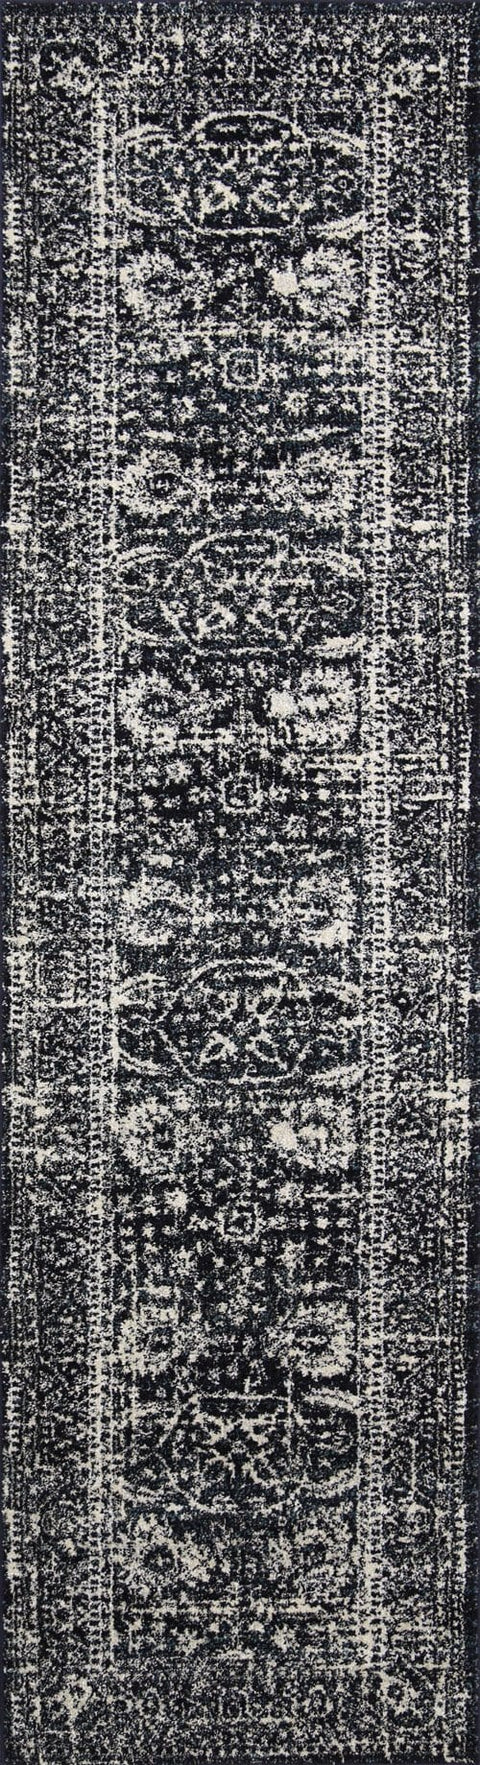 Biloxi Ivory Black and Navy Floral Transitional Runner Rug